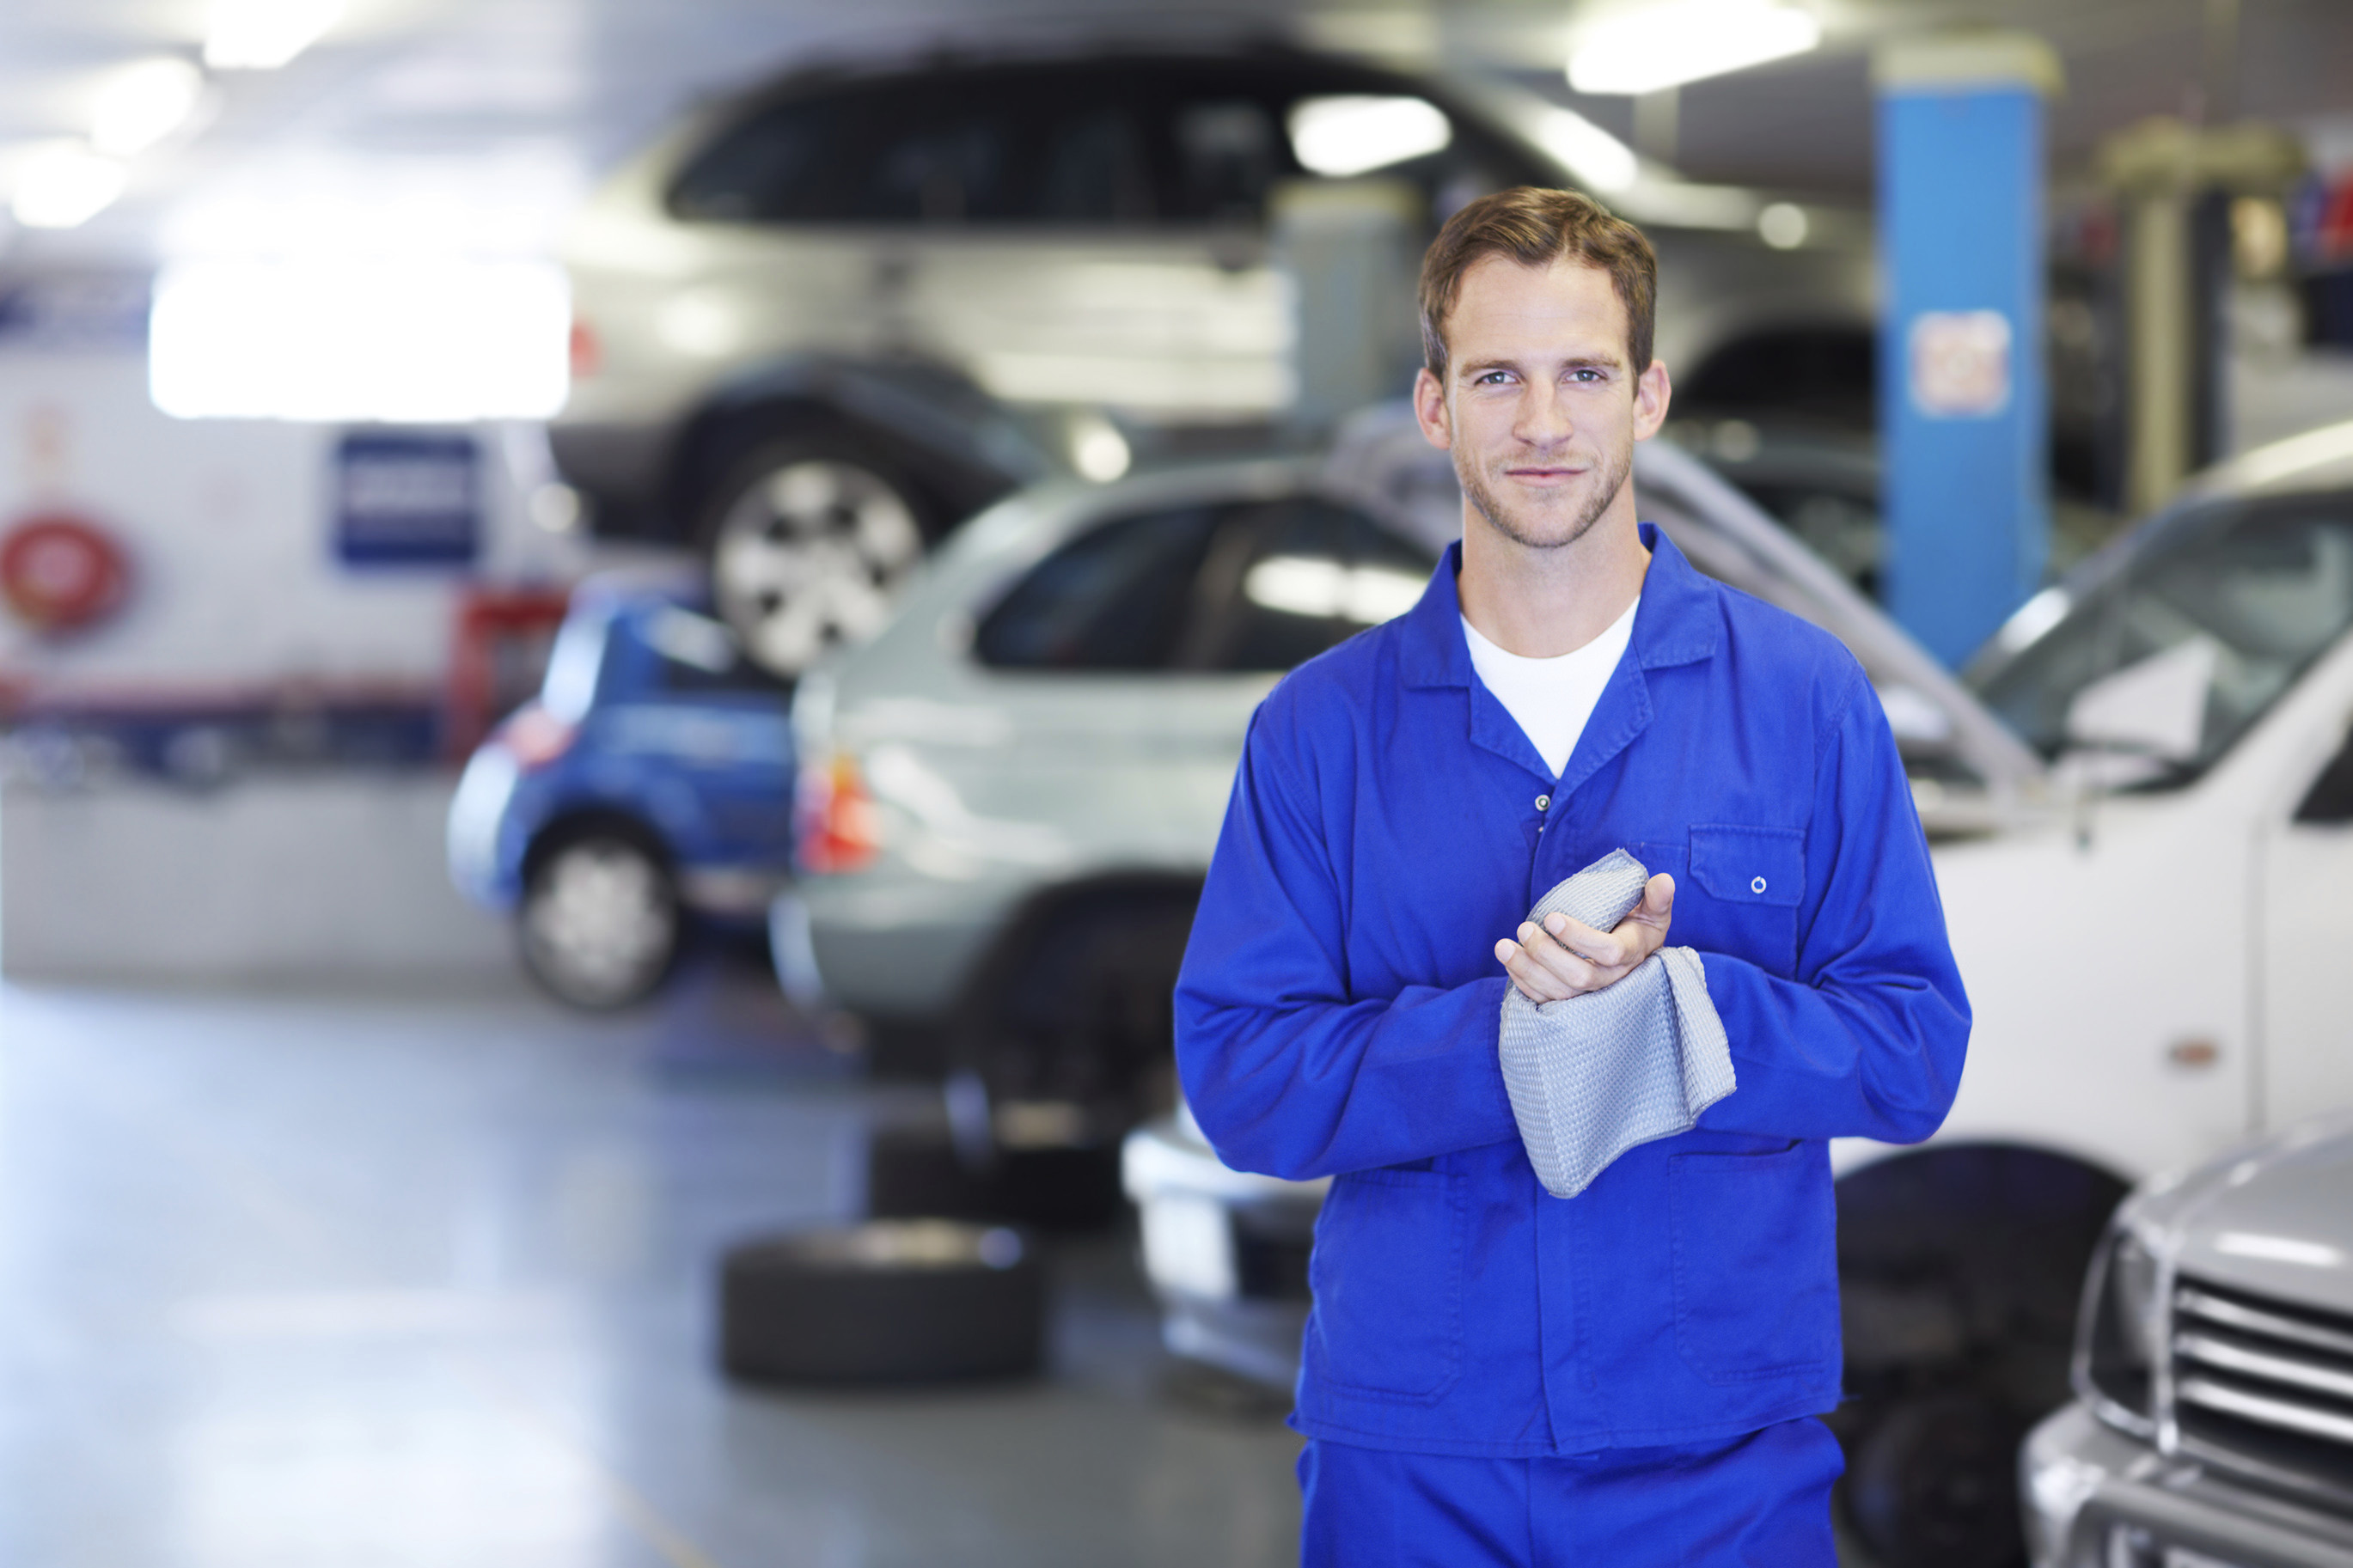 Honda Oil Change Coupons in Fredericksburg, VA